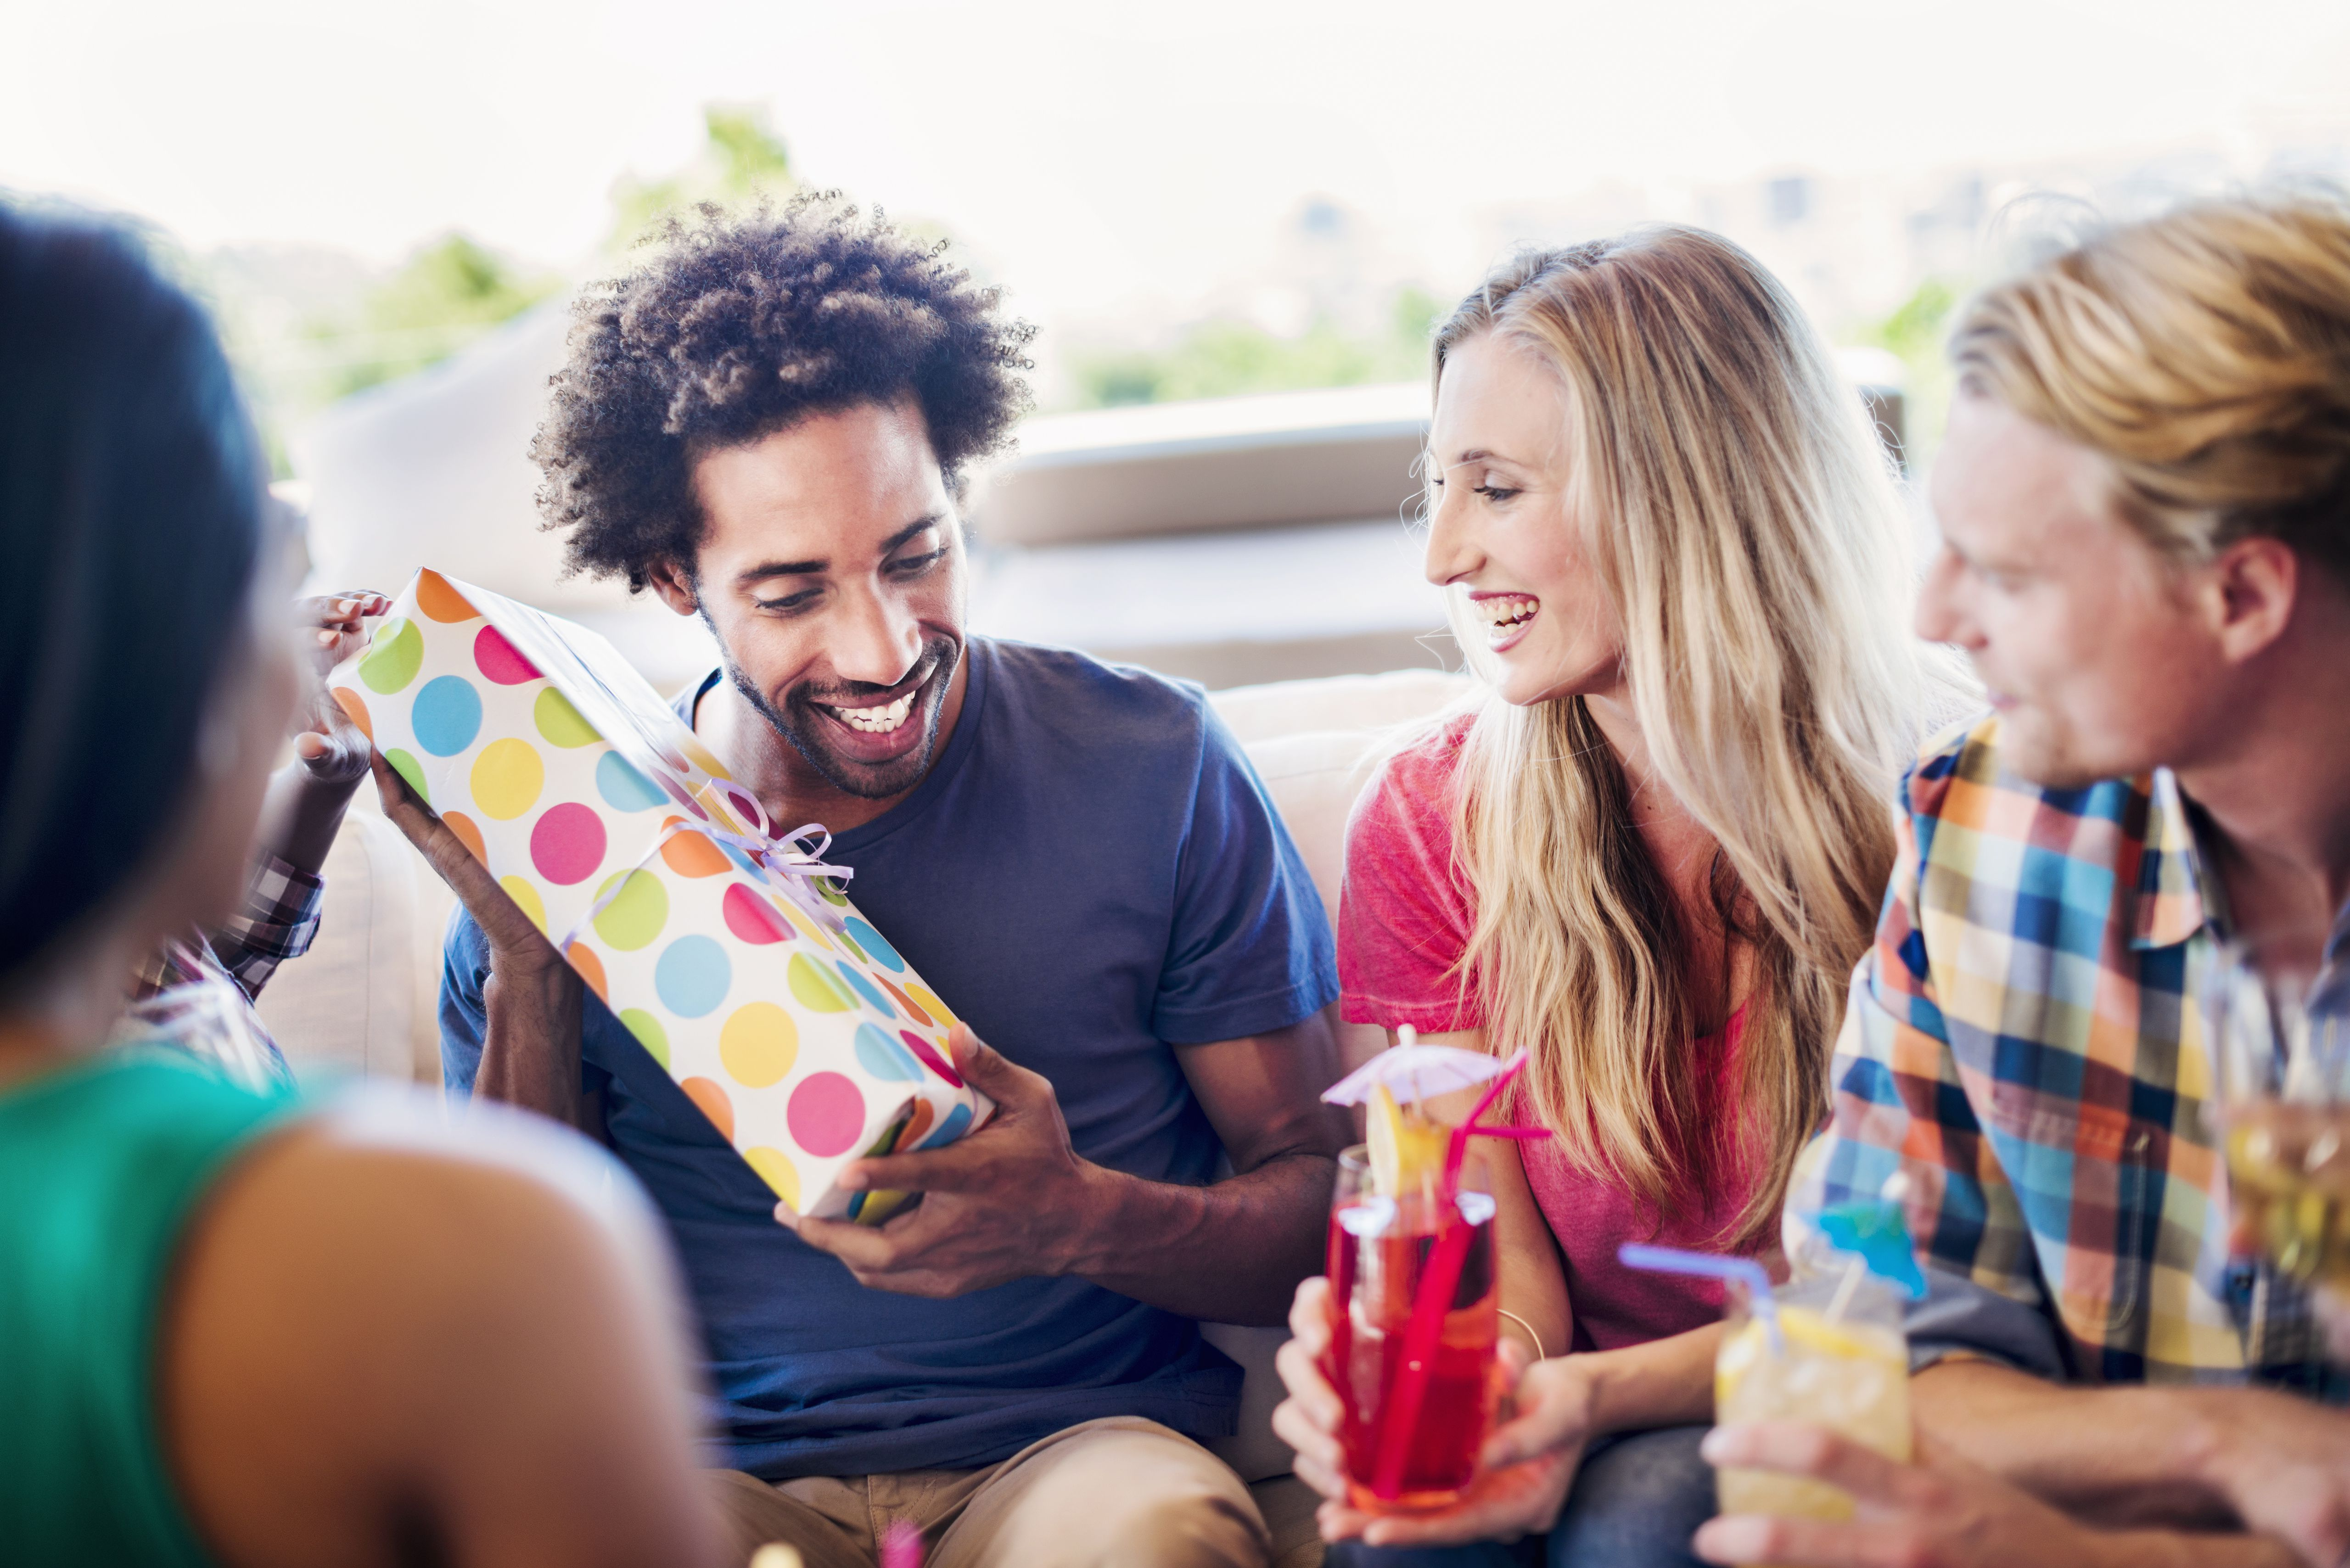 Holiday shopping should be fun, not stressful. So, if you have a teen